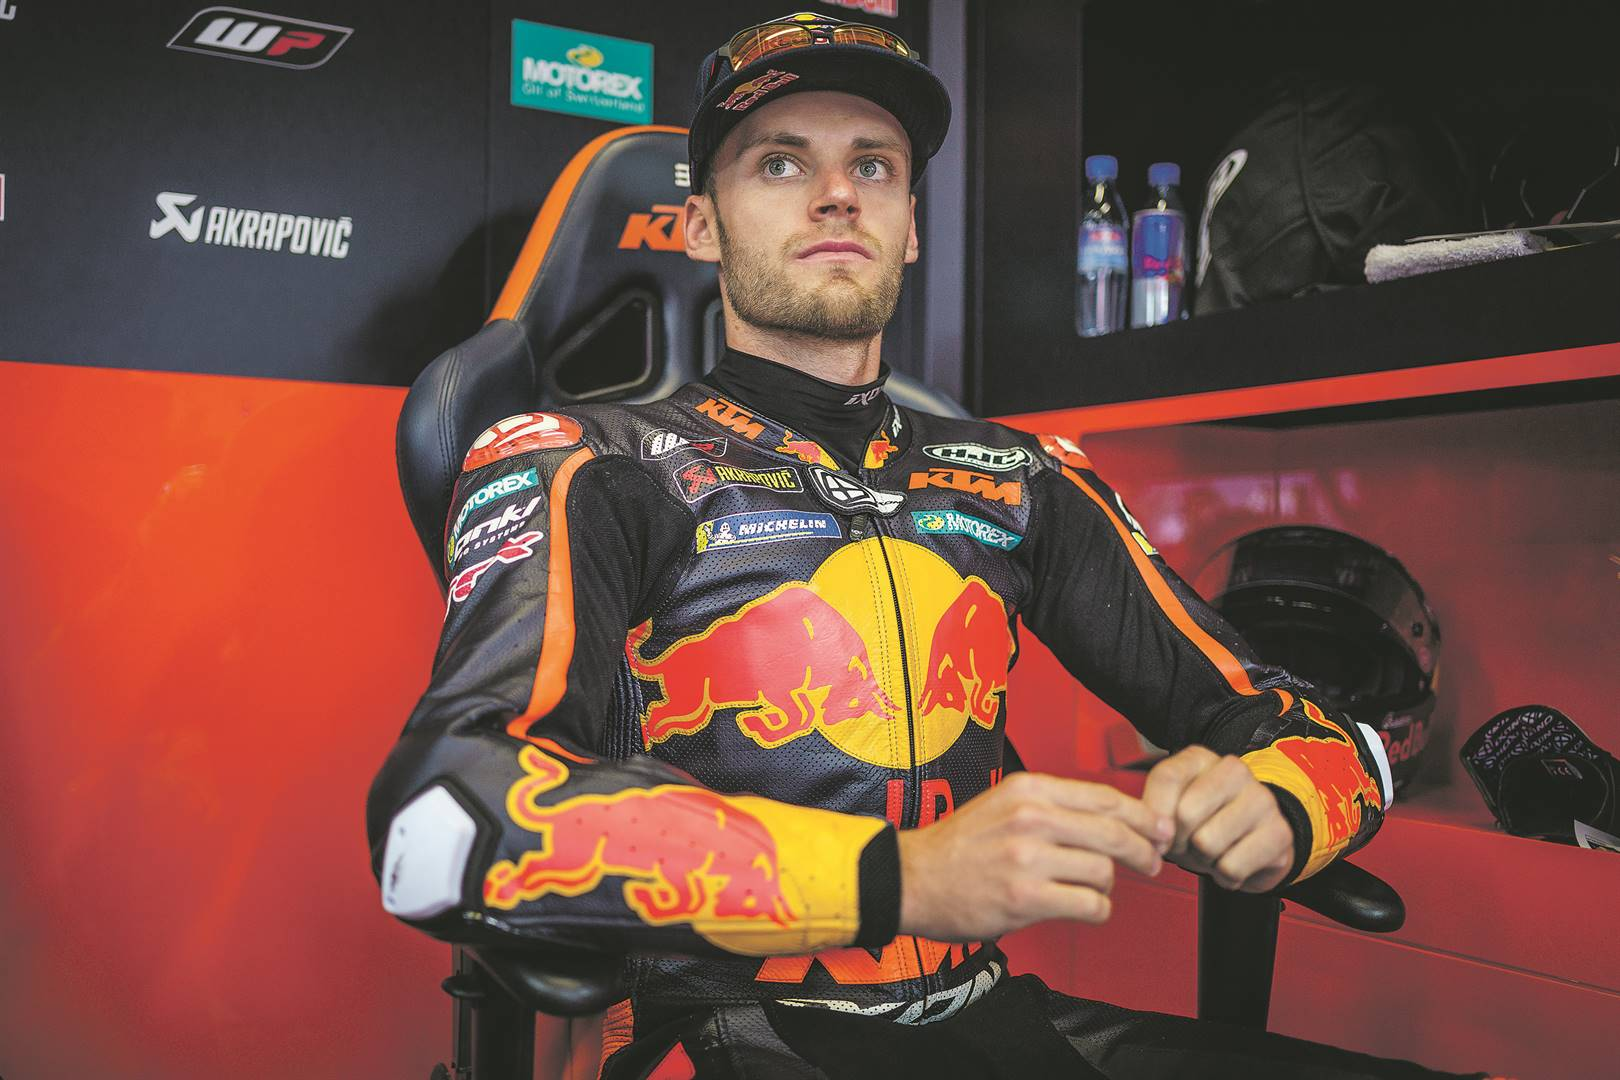 front seat Brad Binder has endeared himself to South Africans. Picture: Philip Platzer / Red Bull Content Pool